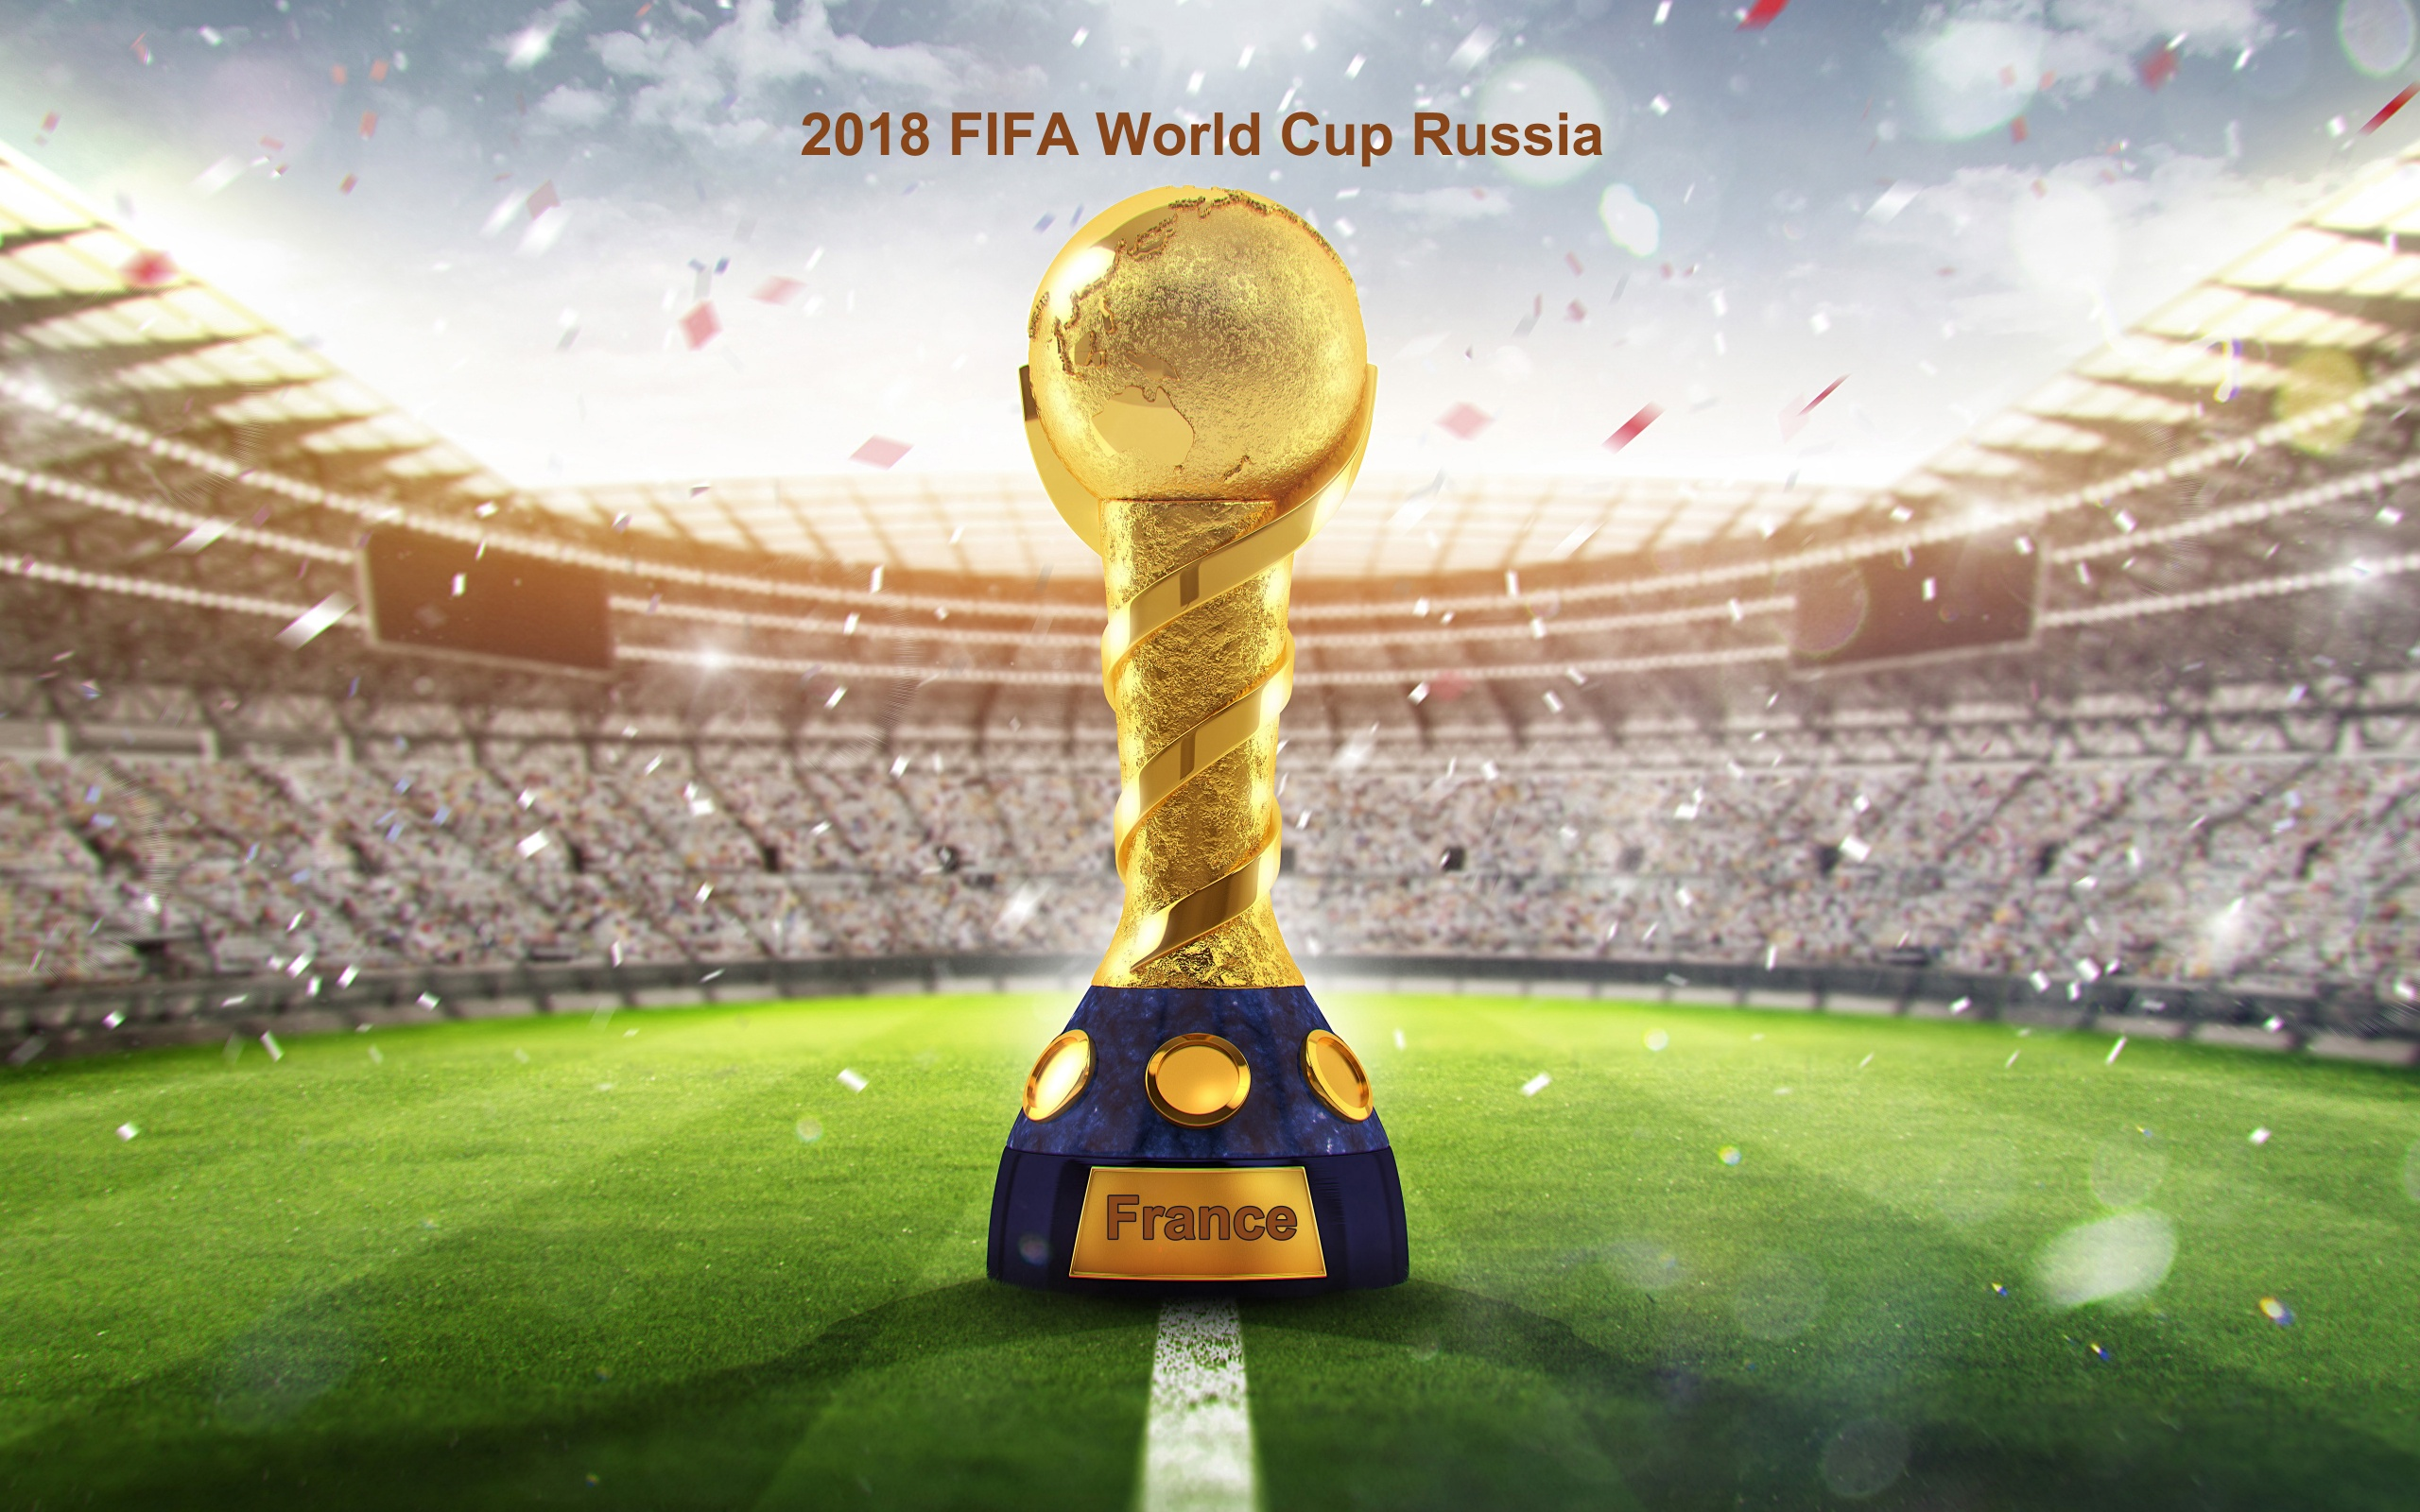 2018 Fifa Wc Russia Golden Trophy